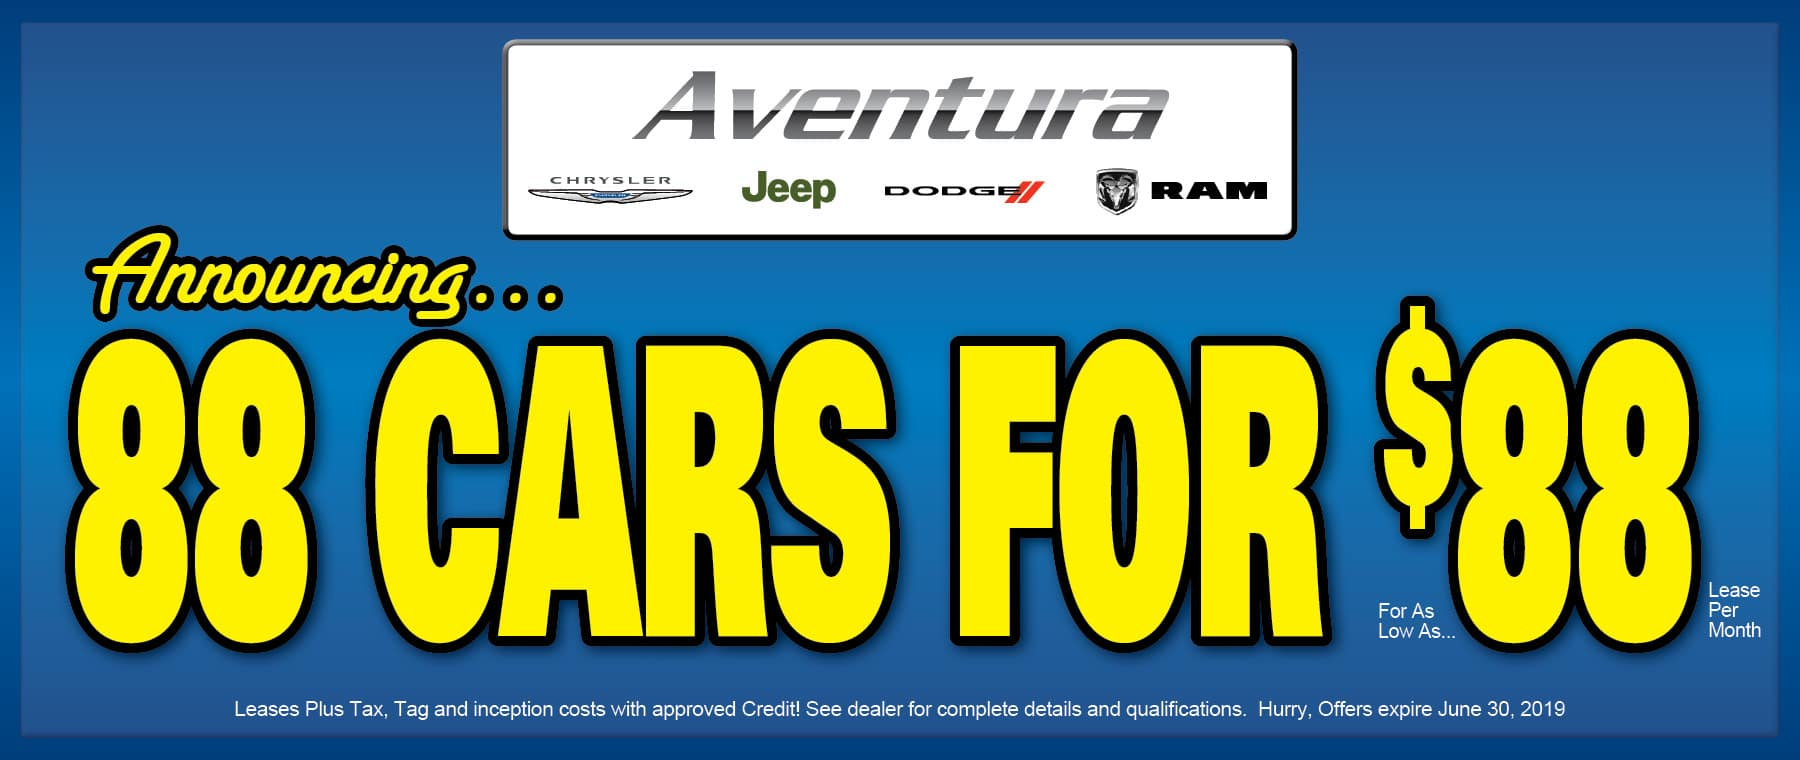 Just Announced! - 88 Cars For $88 Lease Per Month!